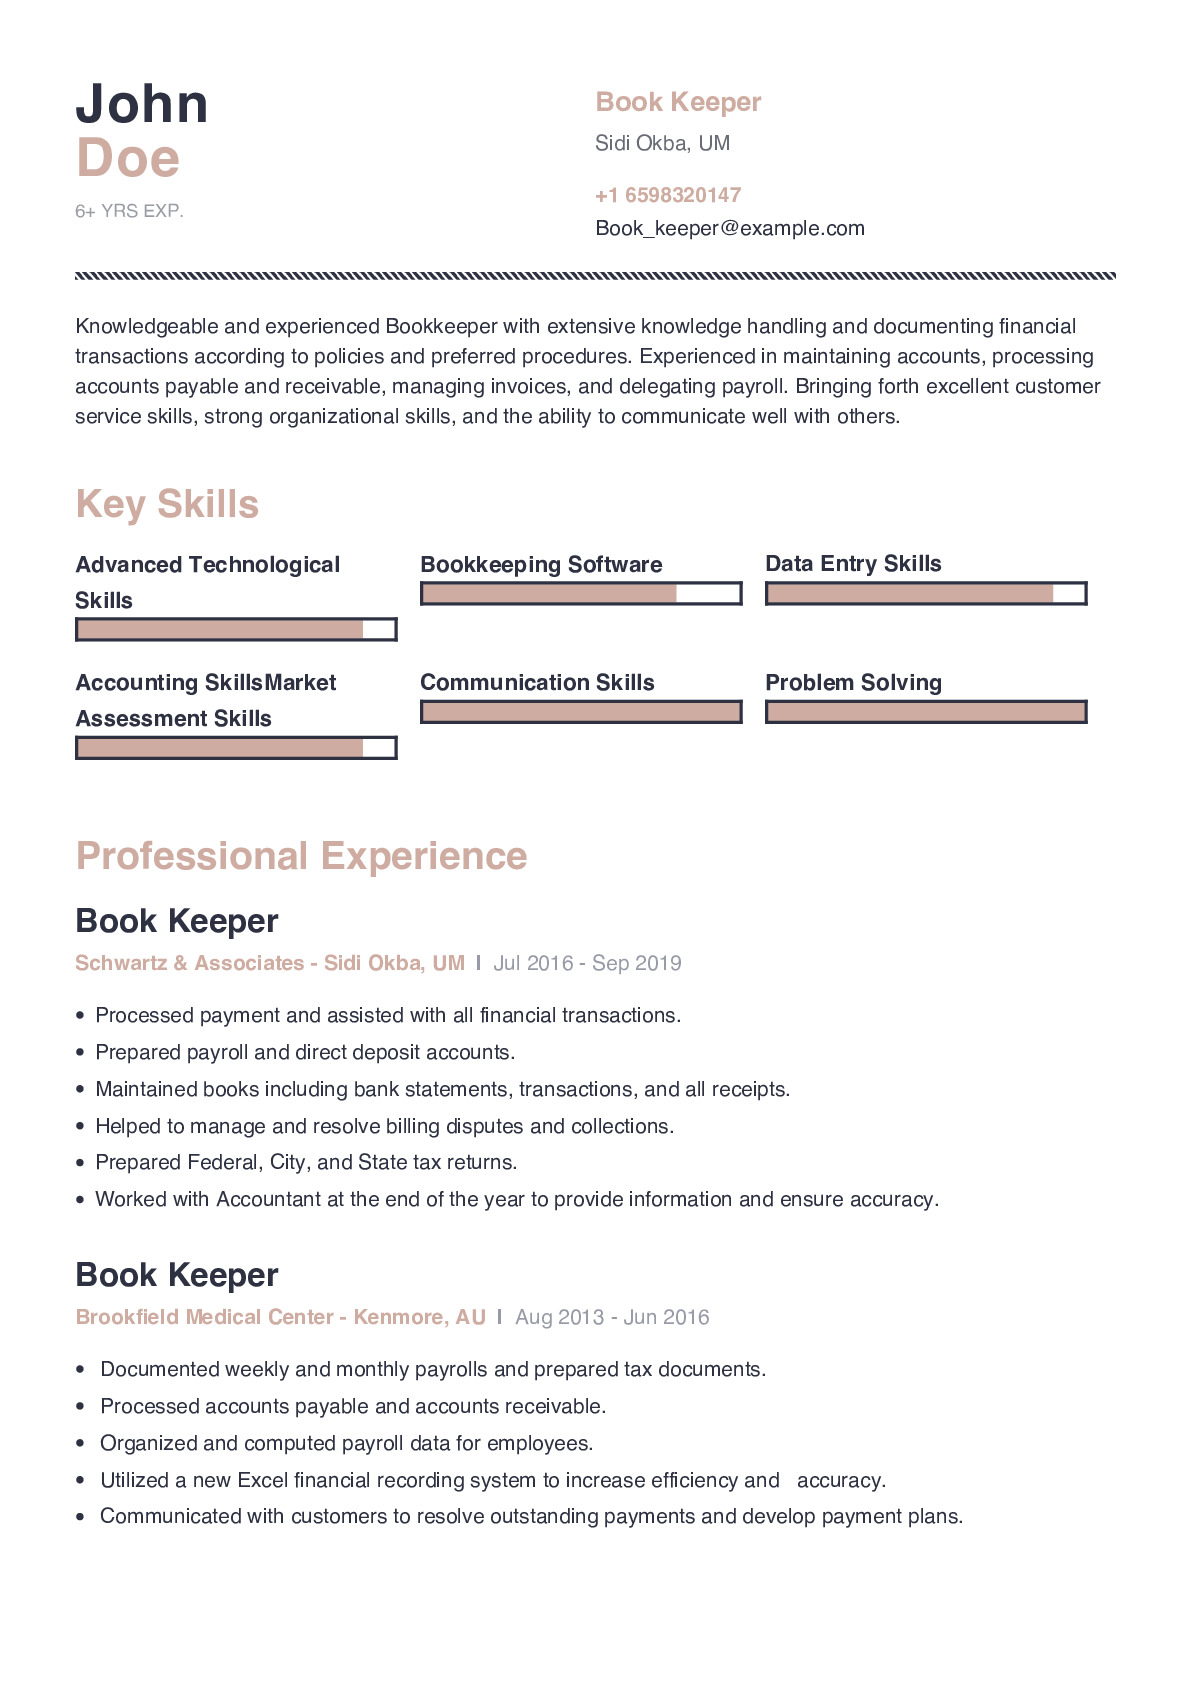 Book Keeper Resume Example